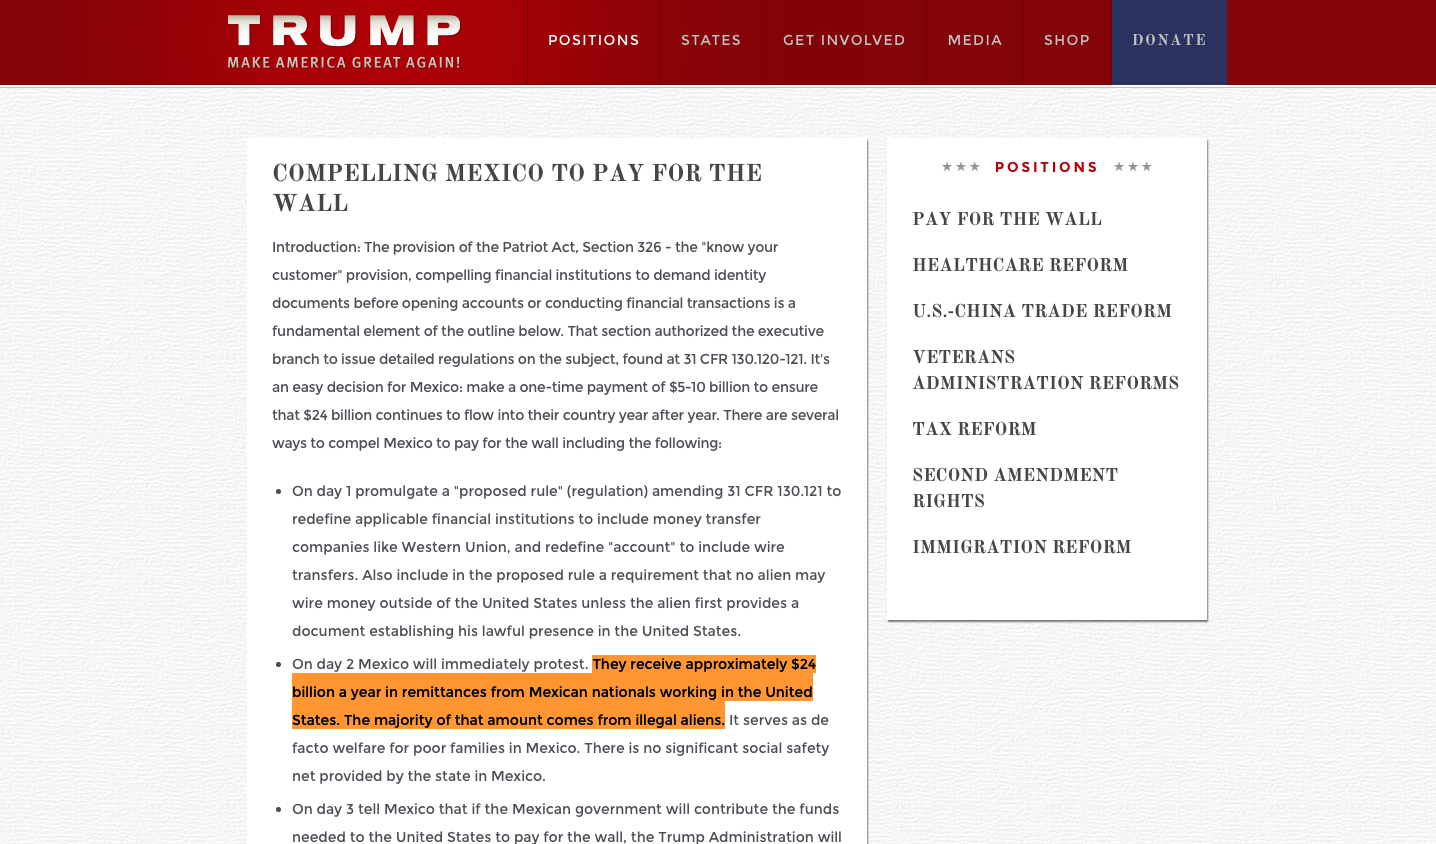 In Turn Trump Argues That He Would Not Let The Wire Transfer Ban Go Into Effect If Mexico Contributes Funds Needed To United States Pay For